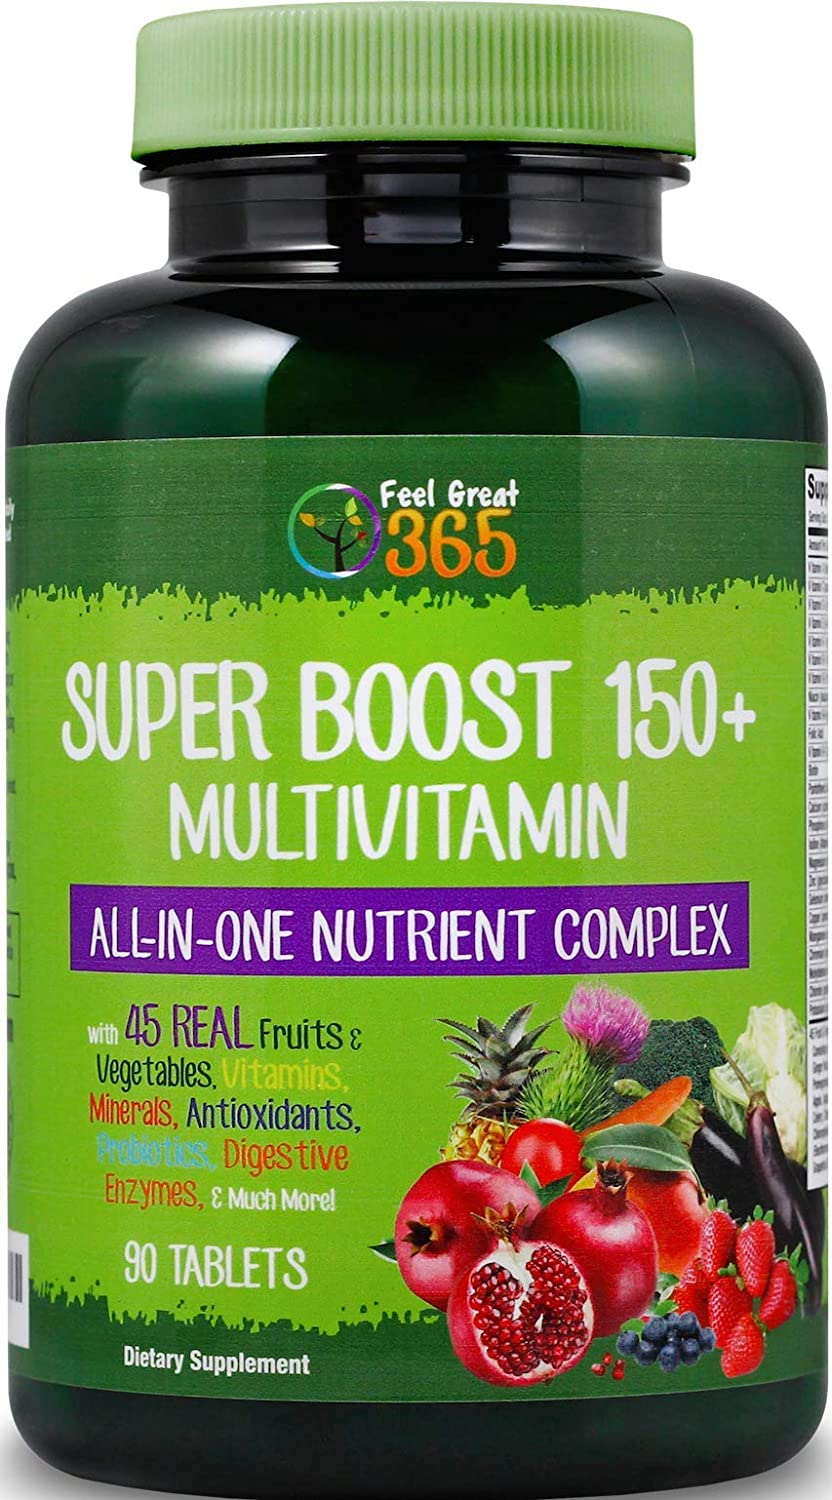 Super Daily Boost 150 Whole Food Multivitamin Capsules – Supports The Immune System, Natural Energy Mental Focus* Blend of Real Fruits, Veggies, Vitamins, Minerals Antioxidants Halal Certified